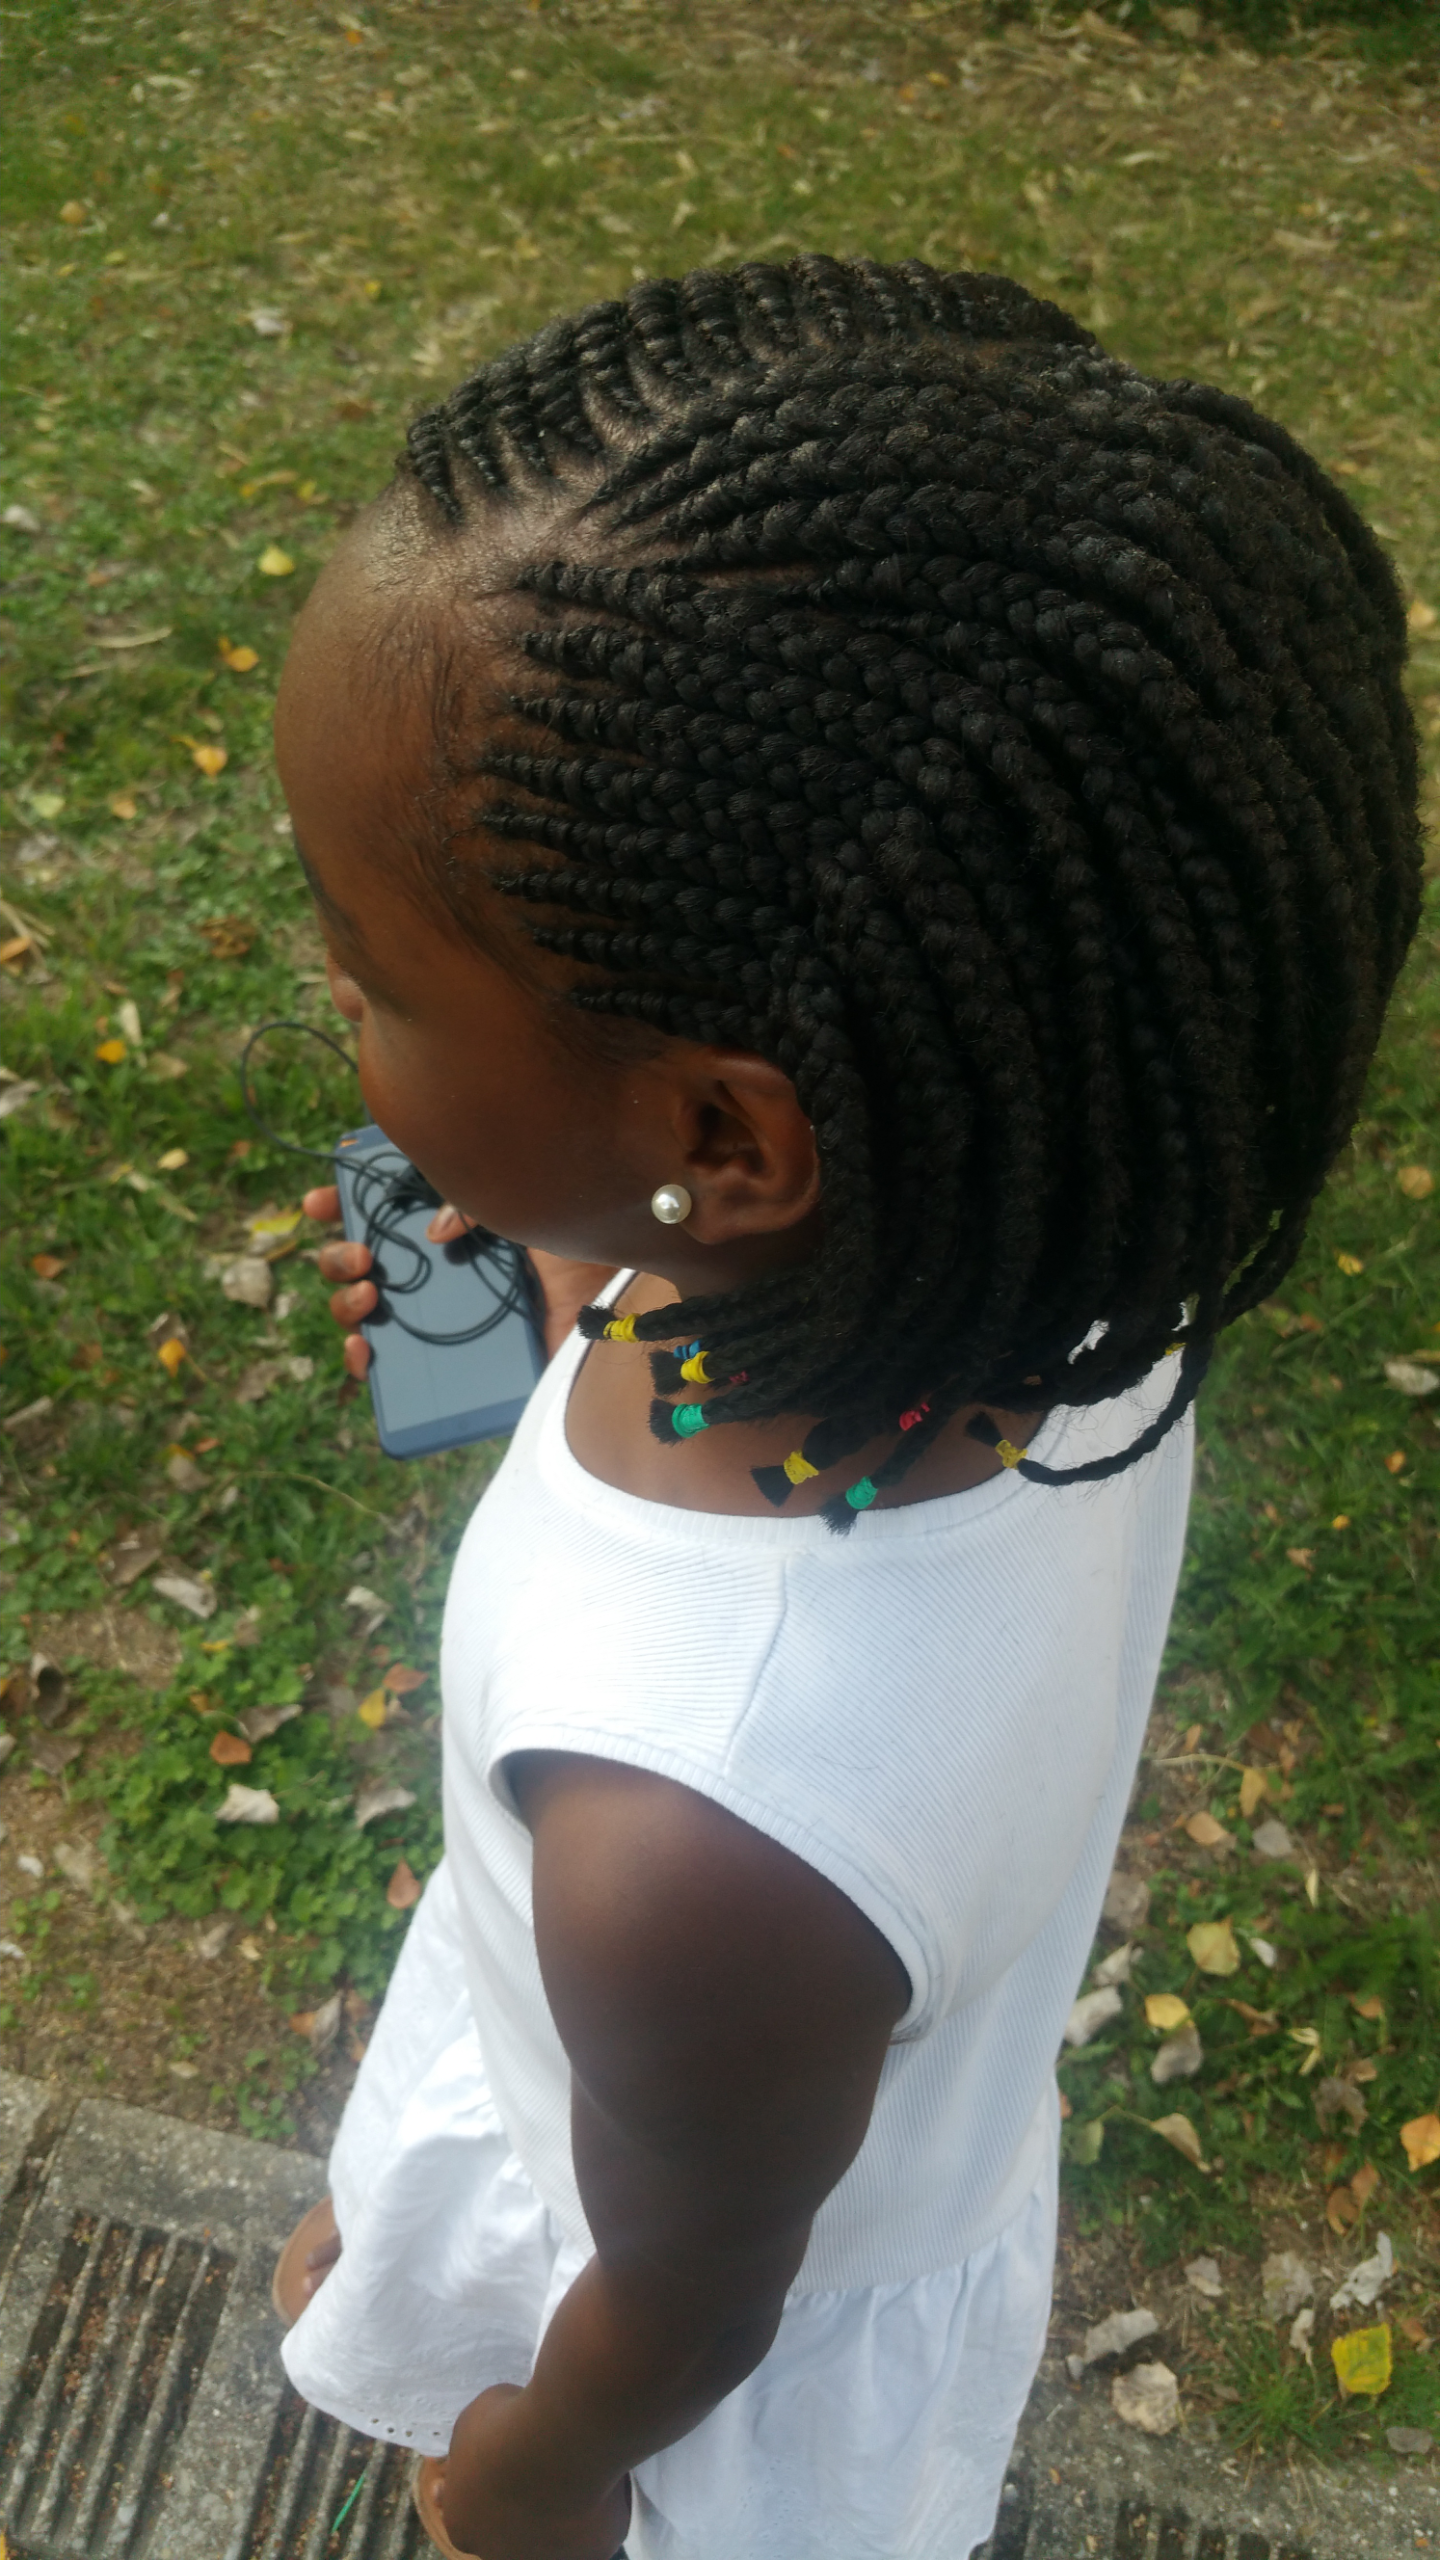 salon de coiffure afro tresse tresses box braids crochet braids vanilles tissages paris 75 77 78 91 92 93 94 95 DNYYOCOY